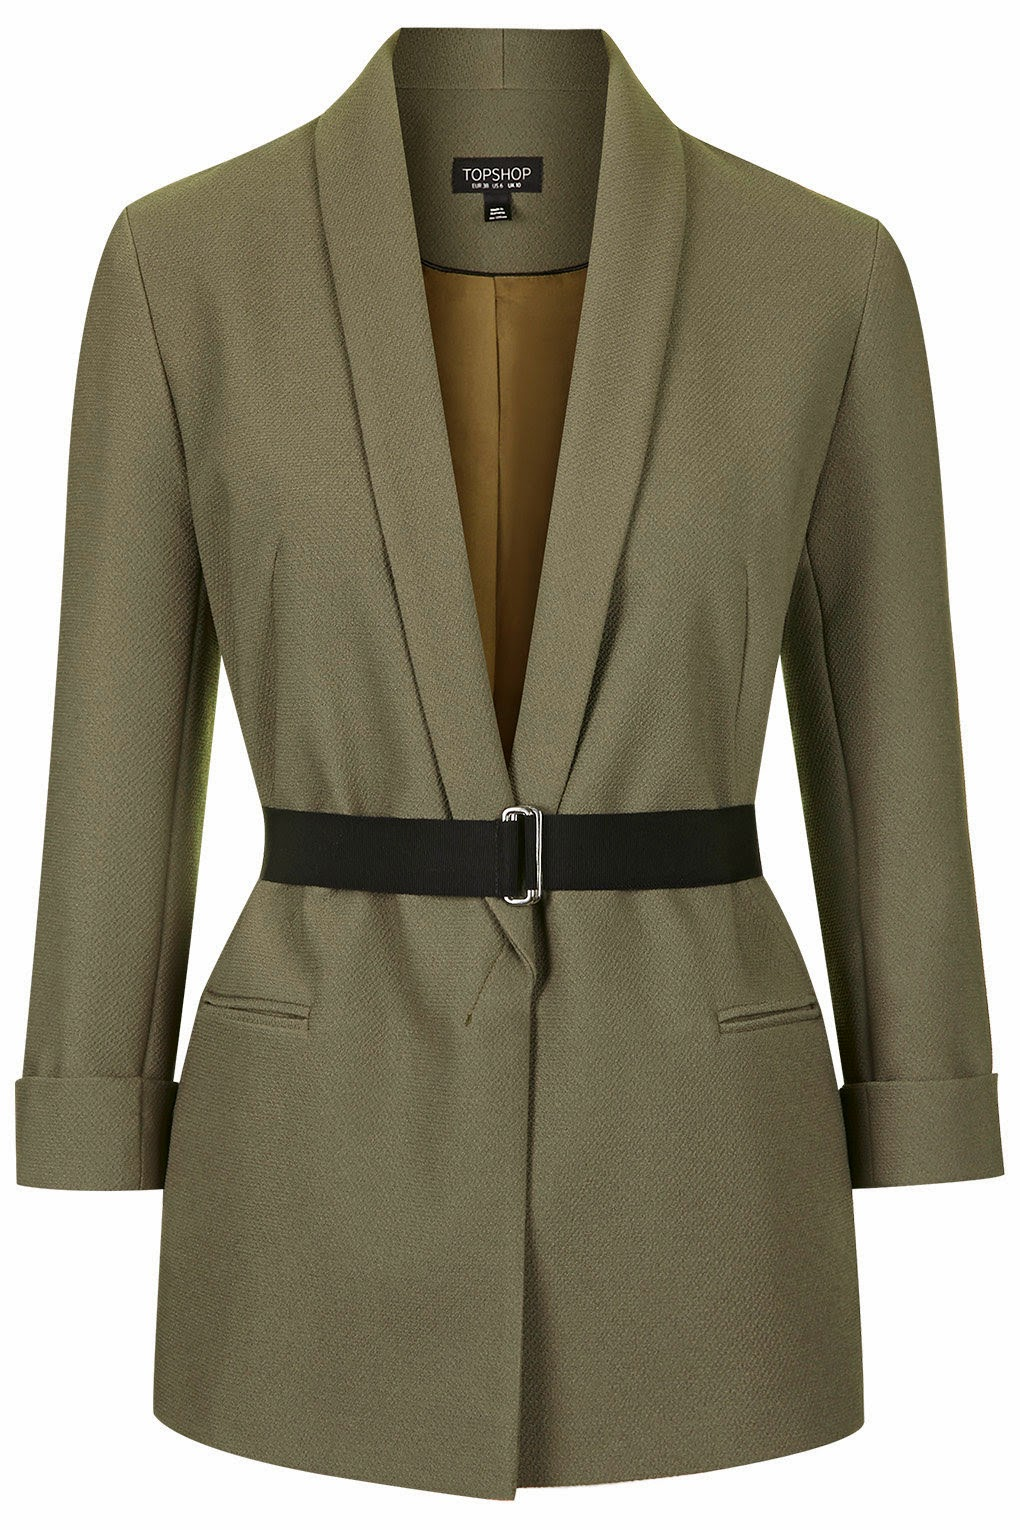 khaki jacket black belt